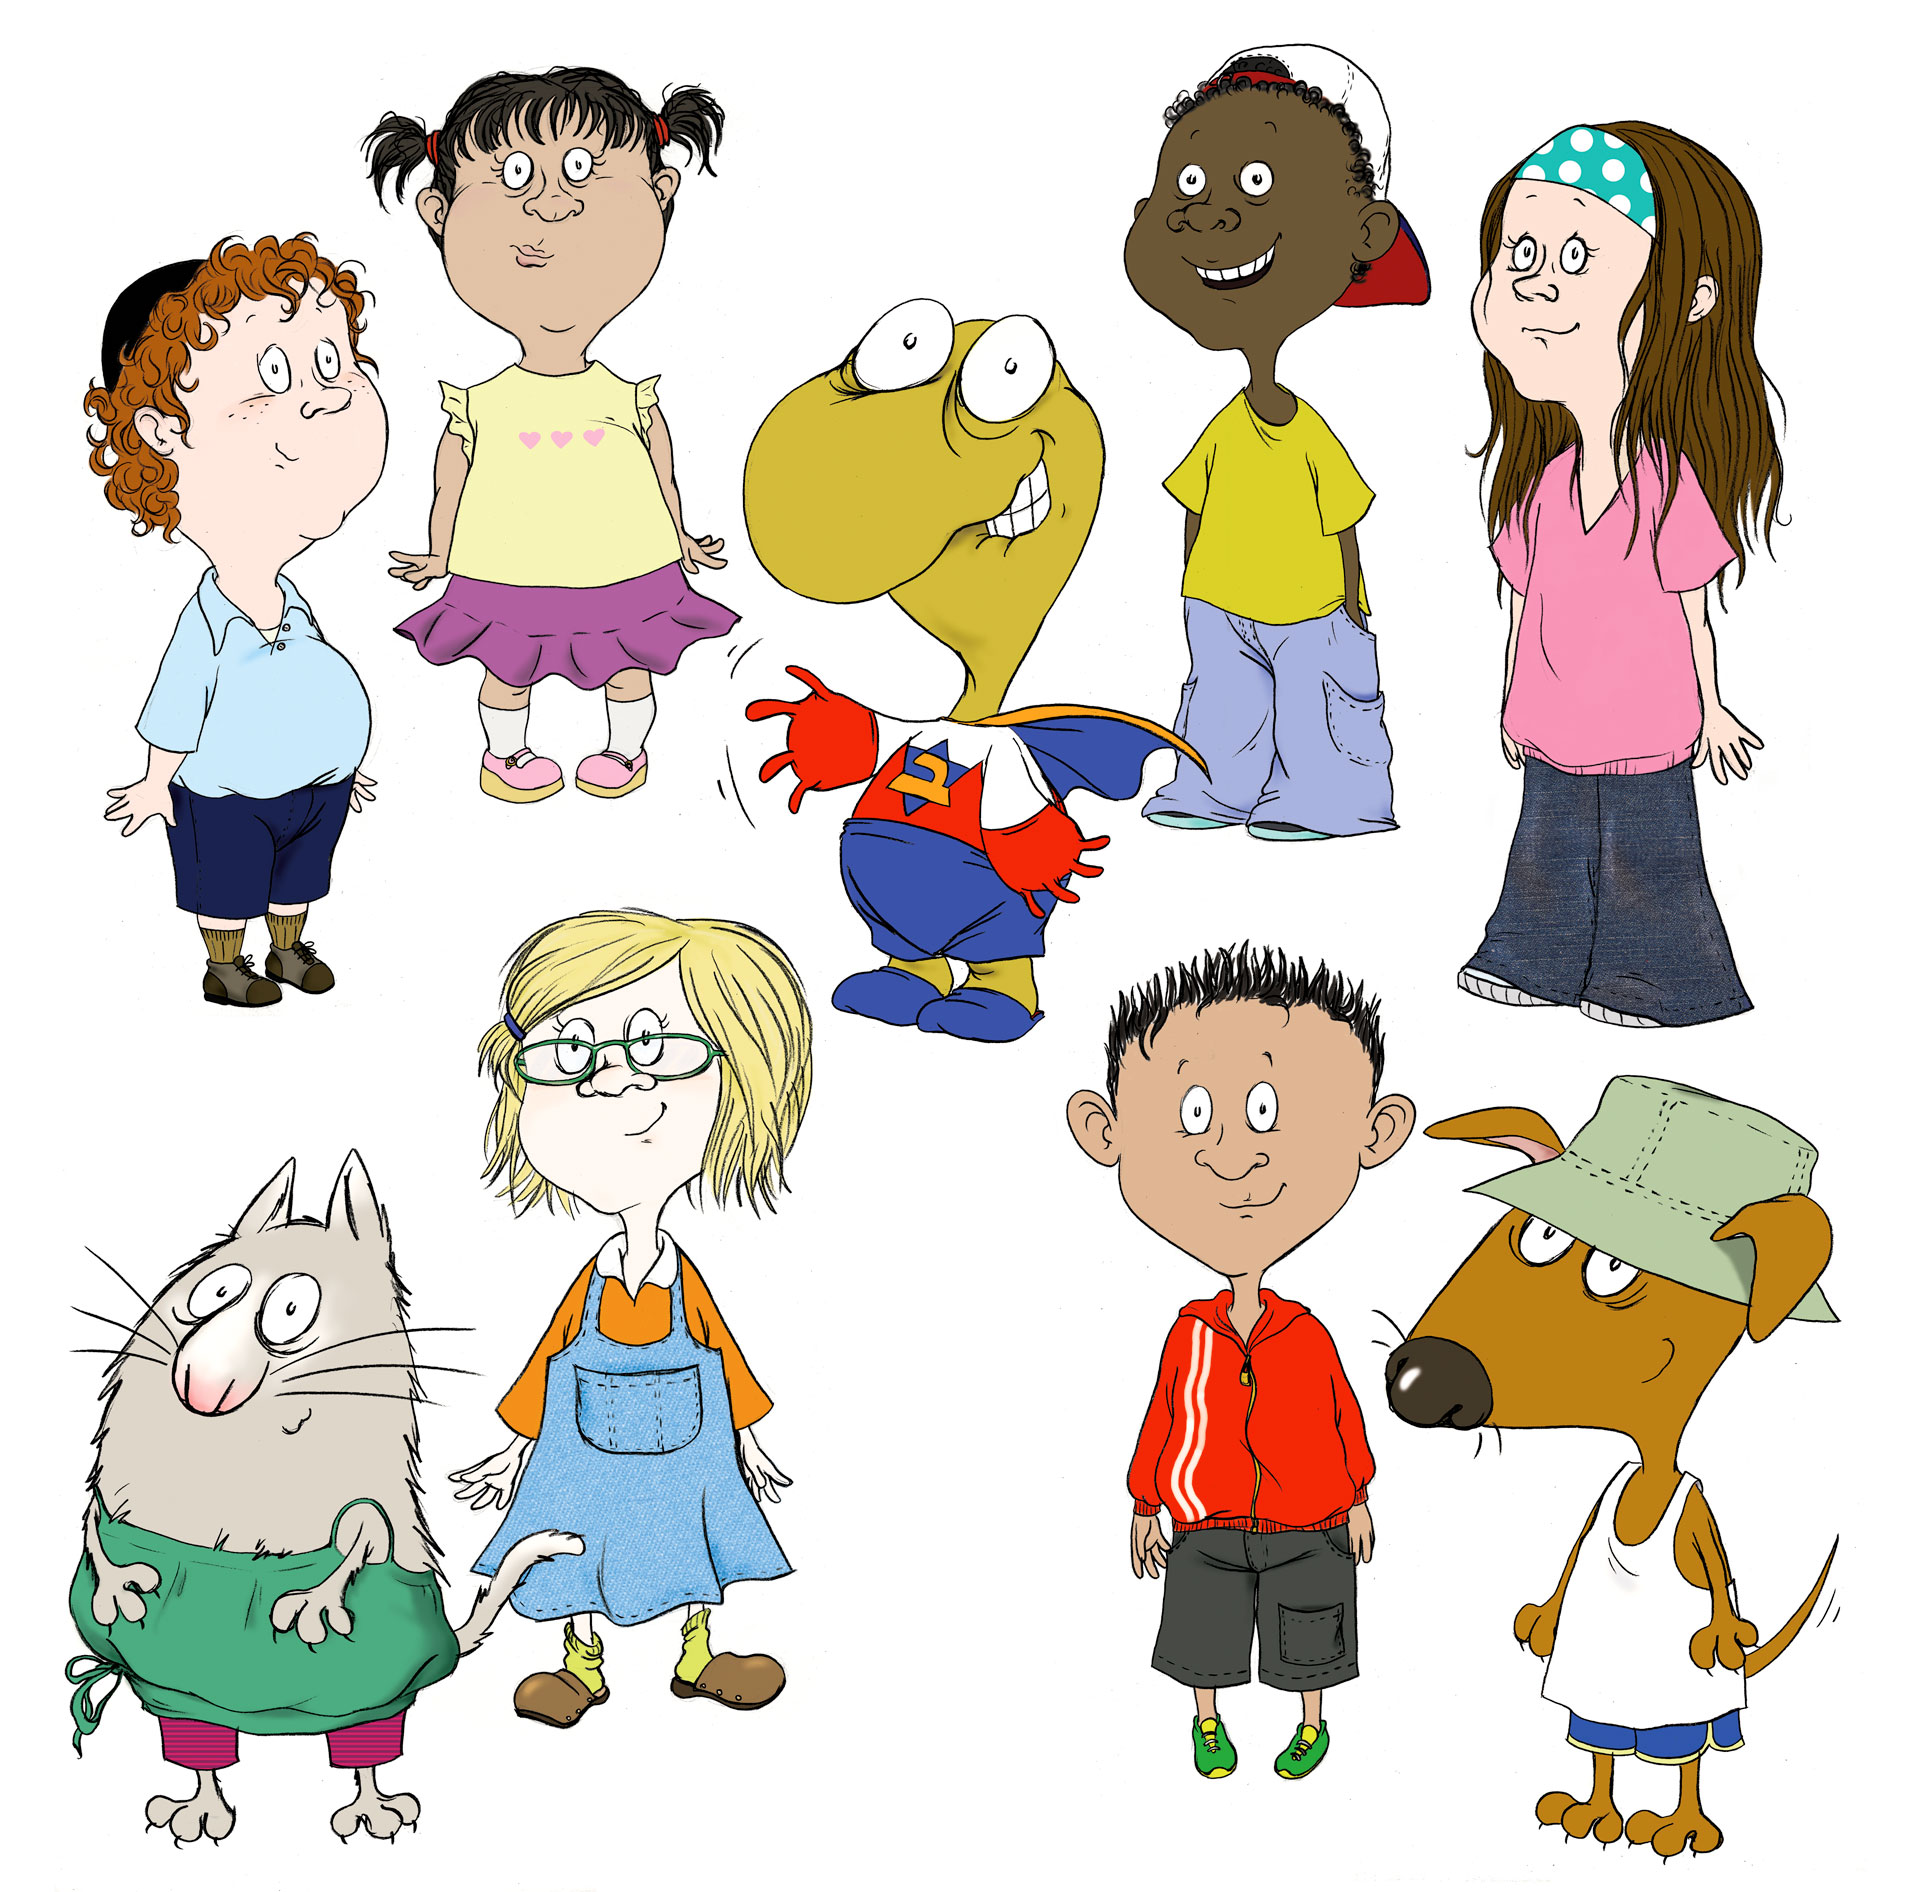 Character designs for an educational books series for pre-school children.